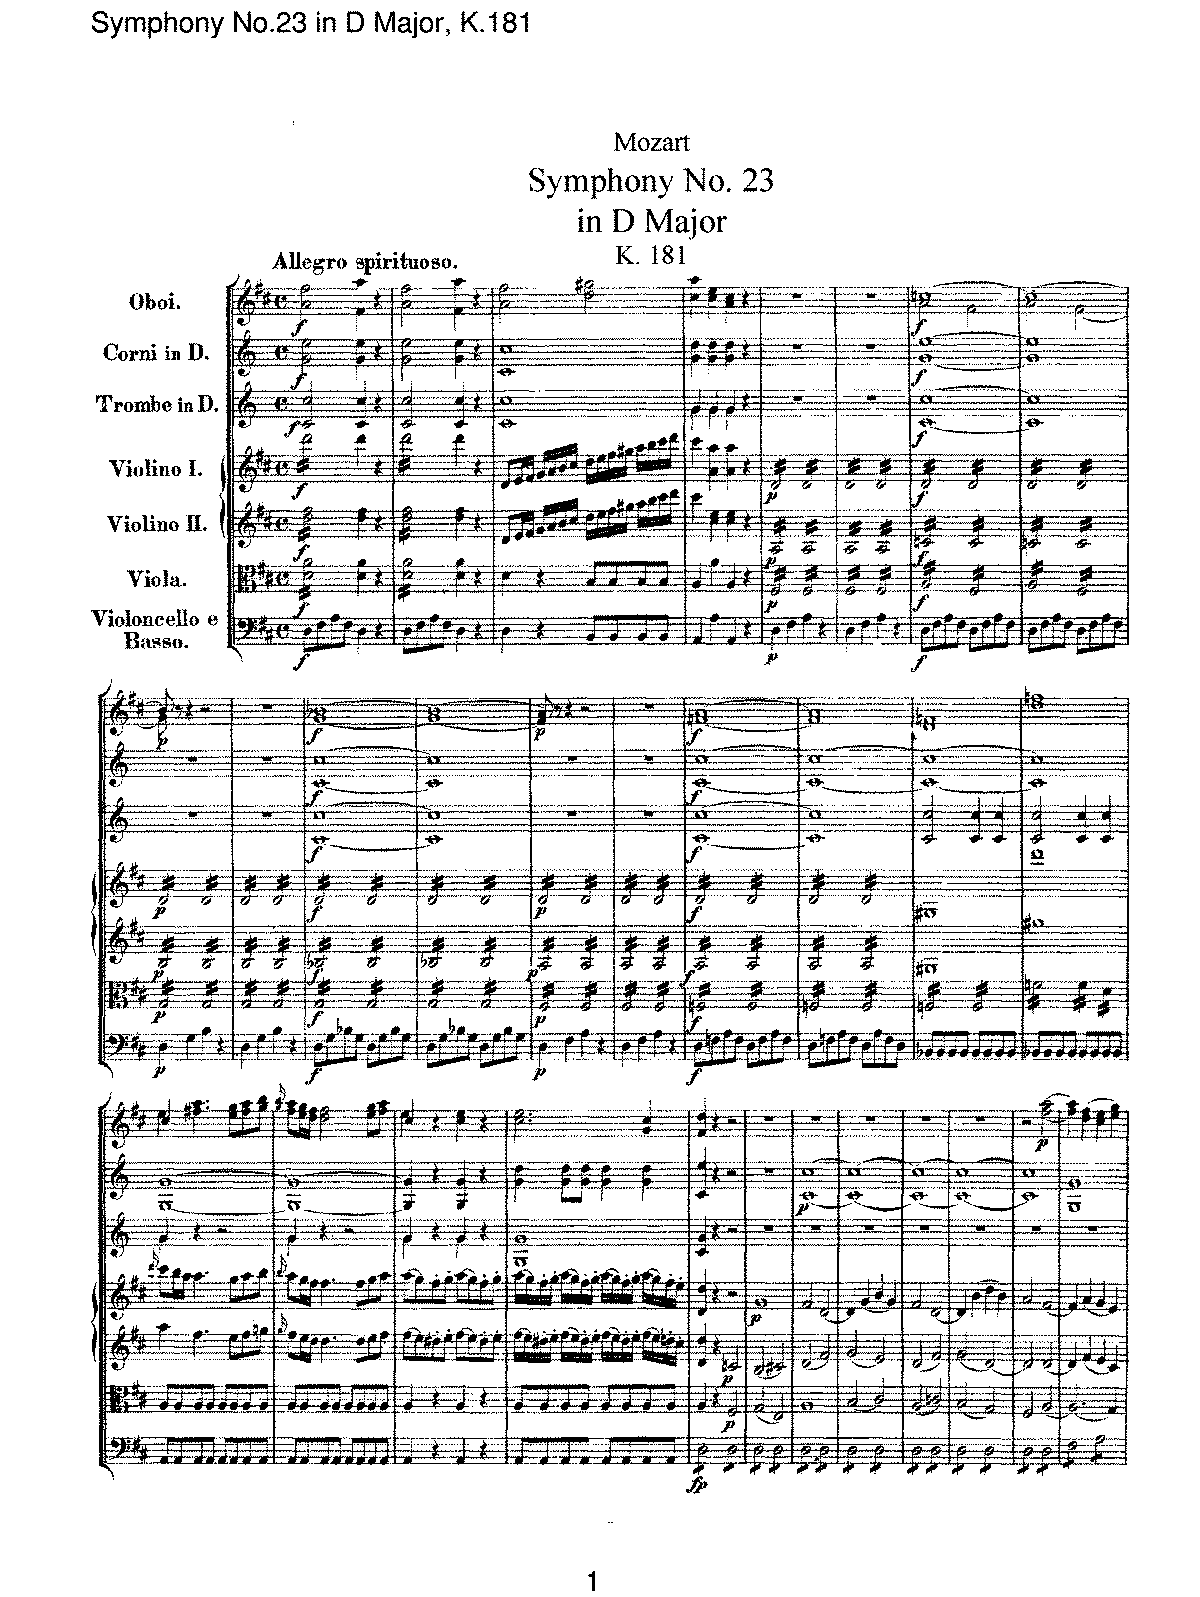 Mozart - Symphony No 23 in D Major, K181.pdf